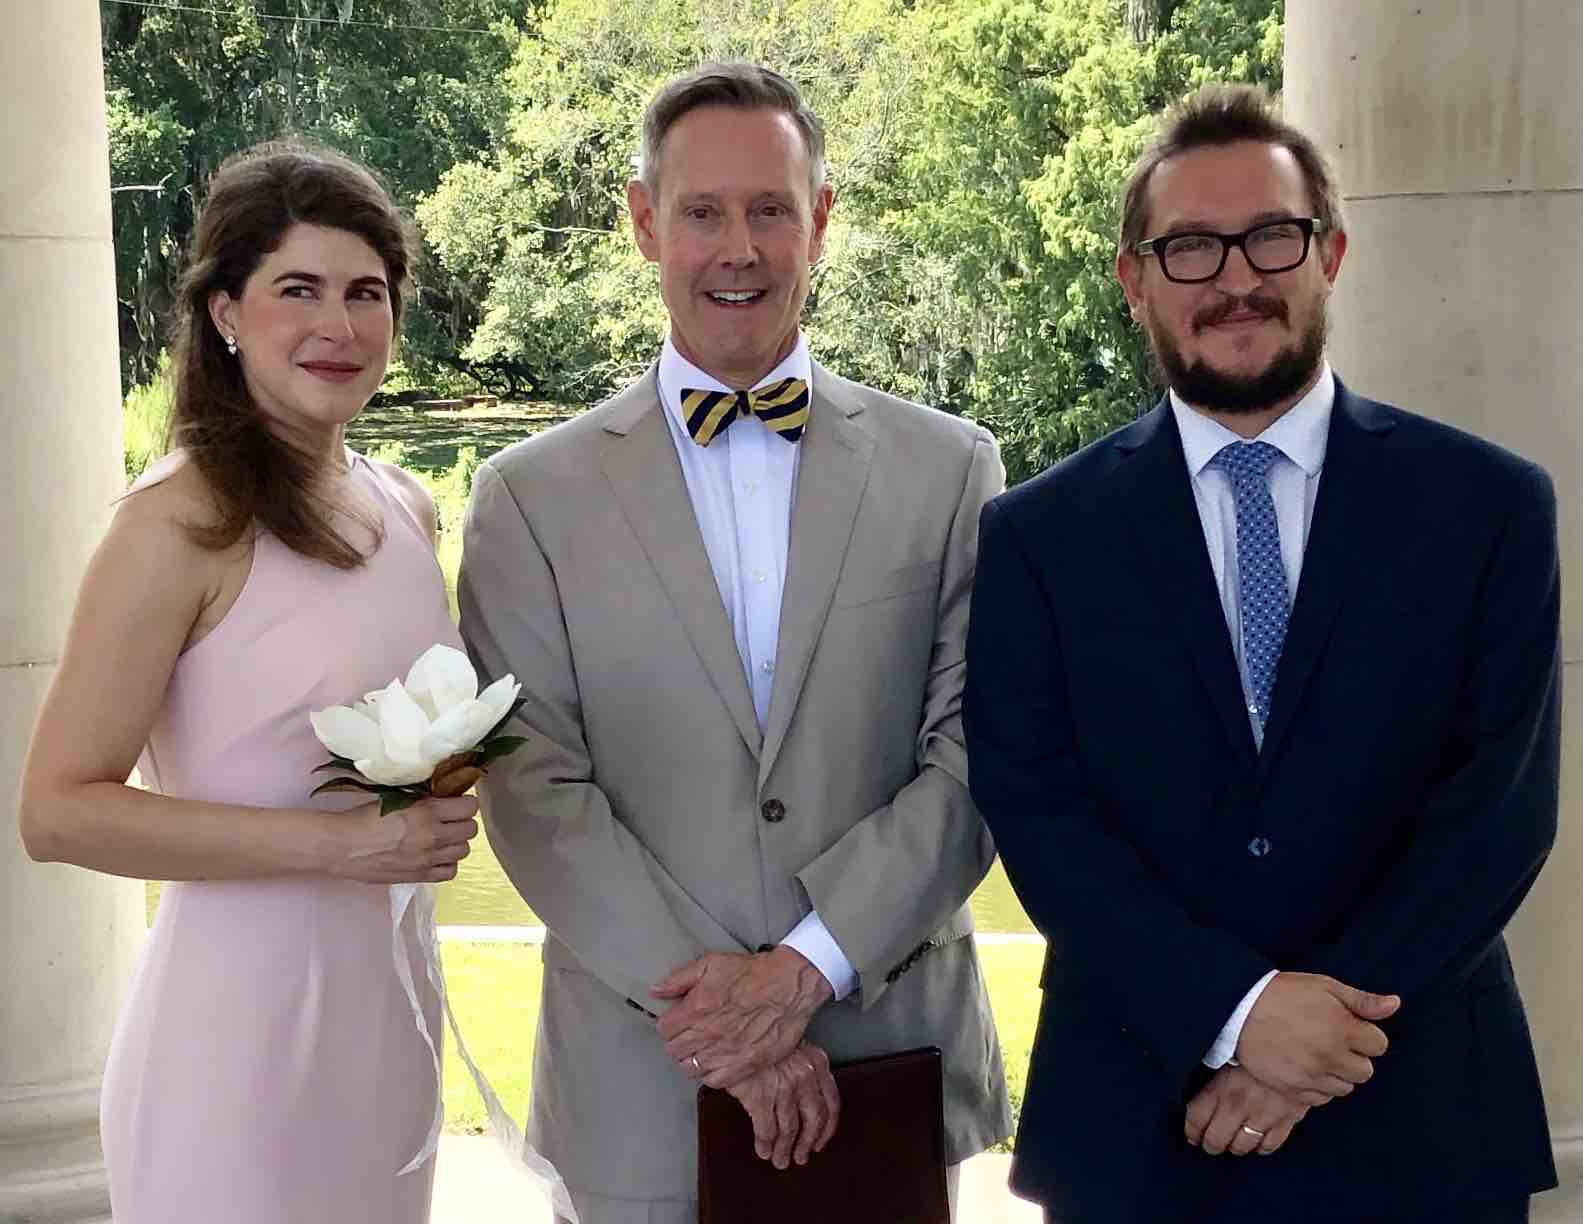 The Officiant Office of New Orleans - Peristyle wedding